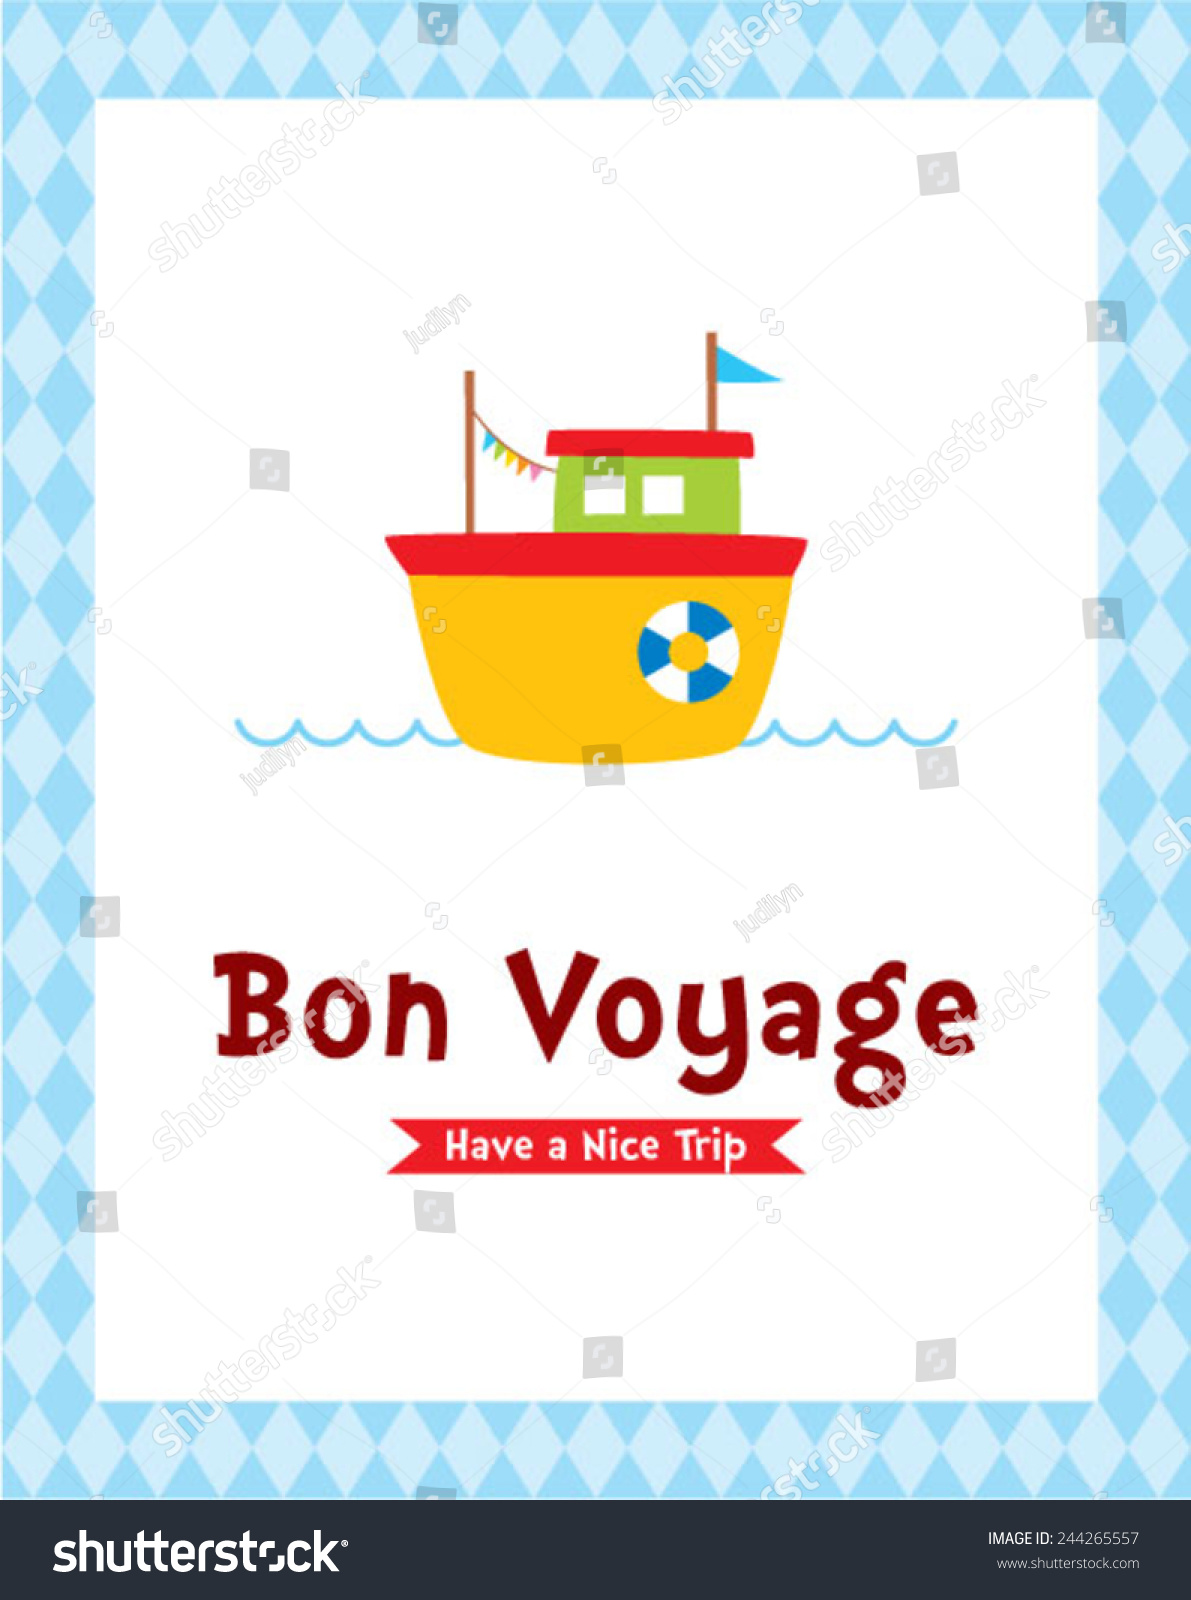 Bon voyage safety journey greeting card stock vector 244265557 bon voyage safety journey greeting card with boat graphic kristyandbryce Image collections